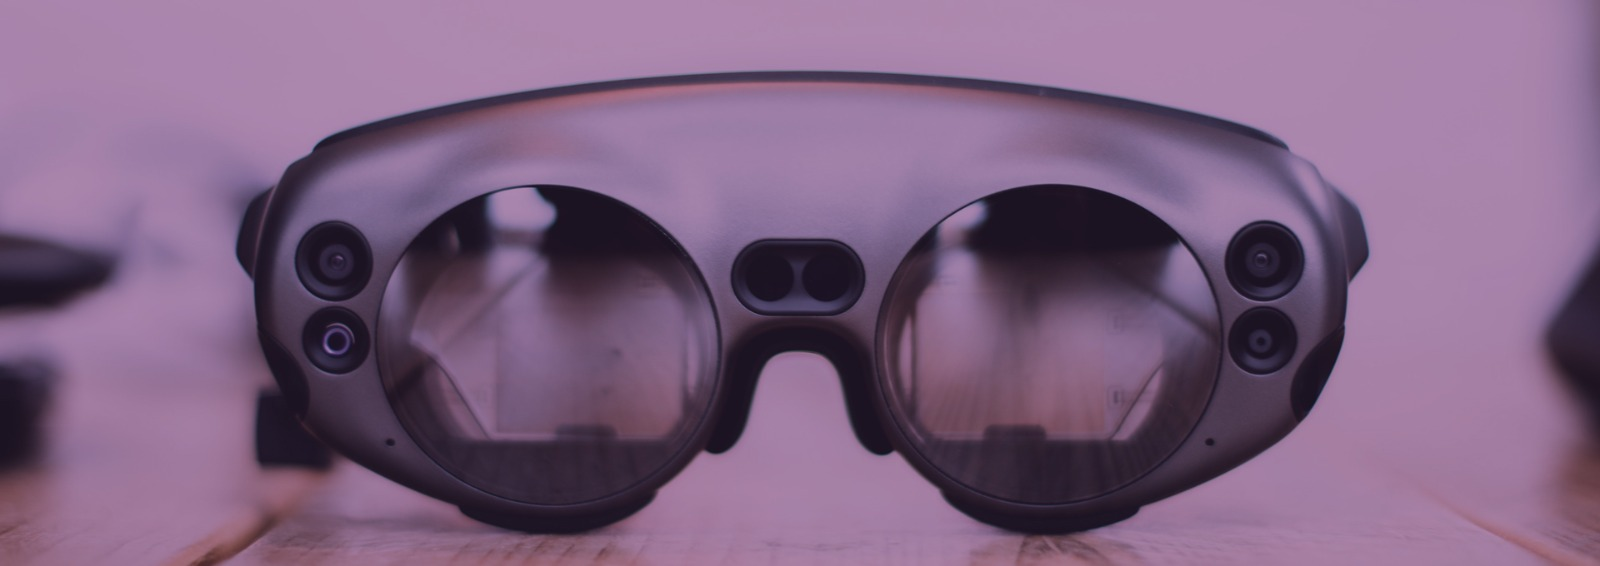 Glossary Of Common AR Terms